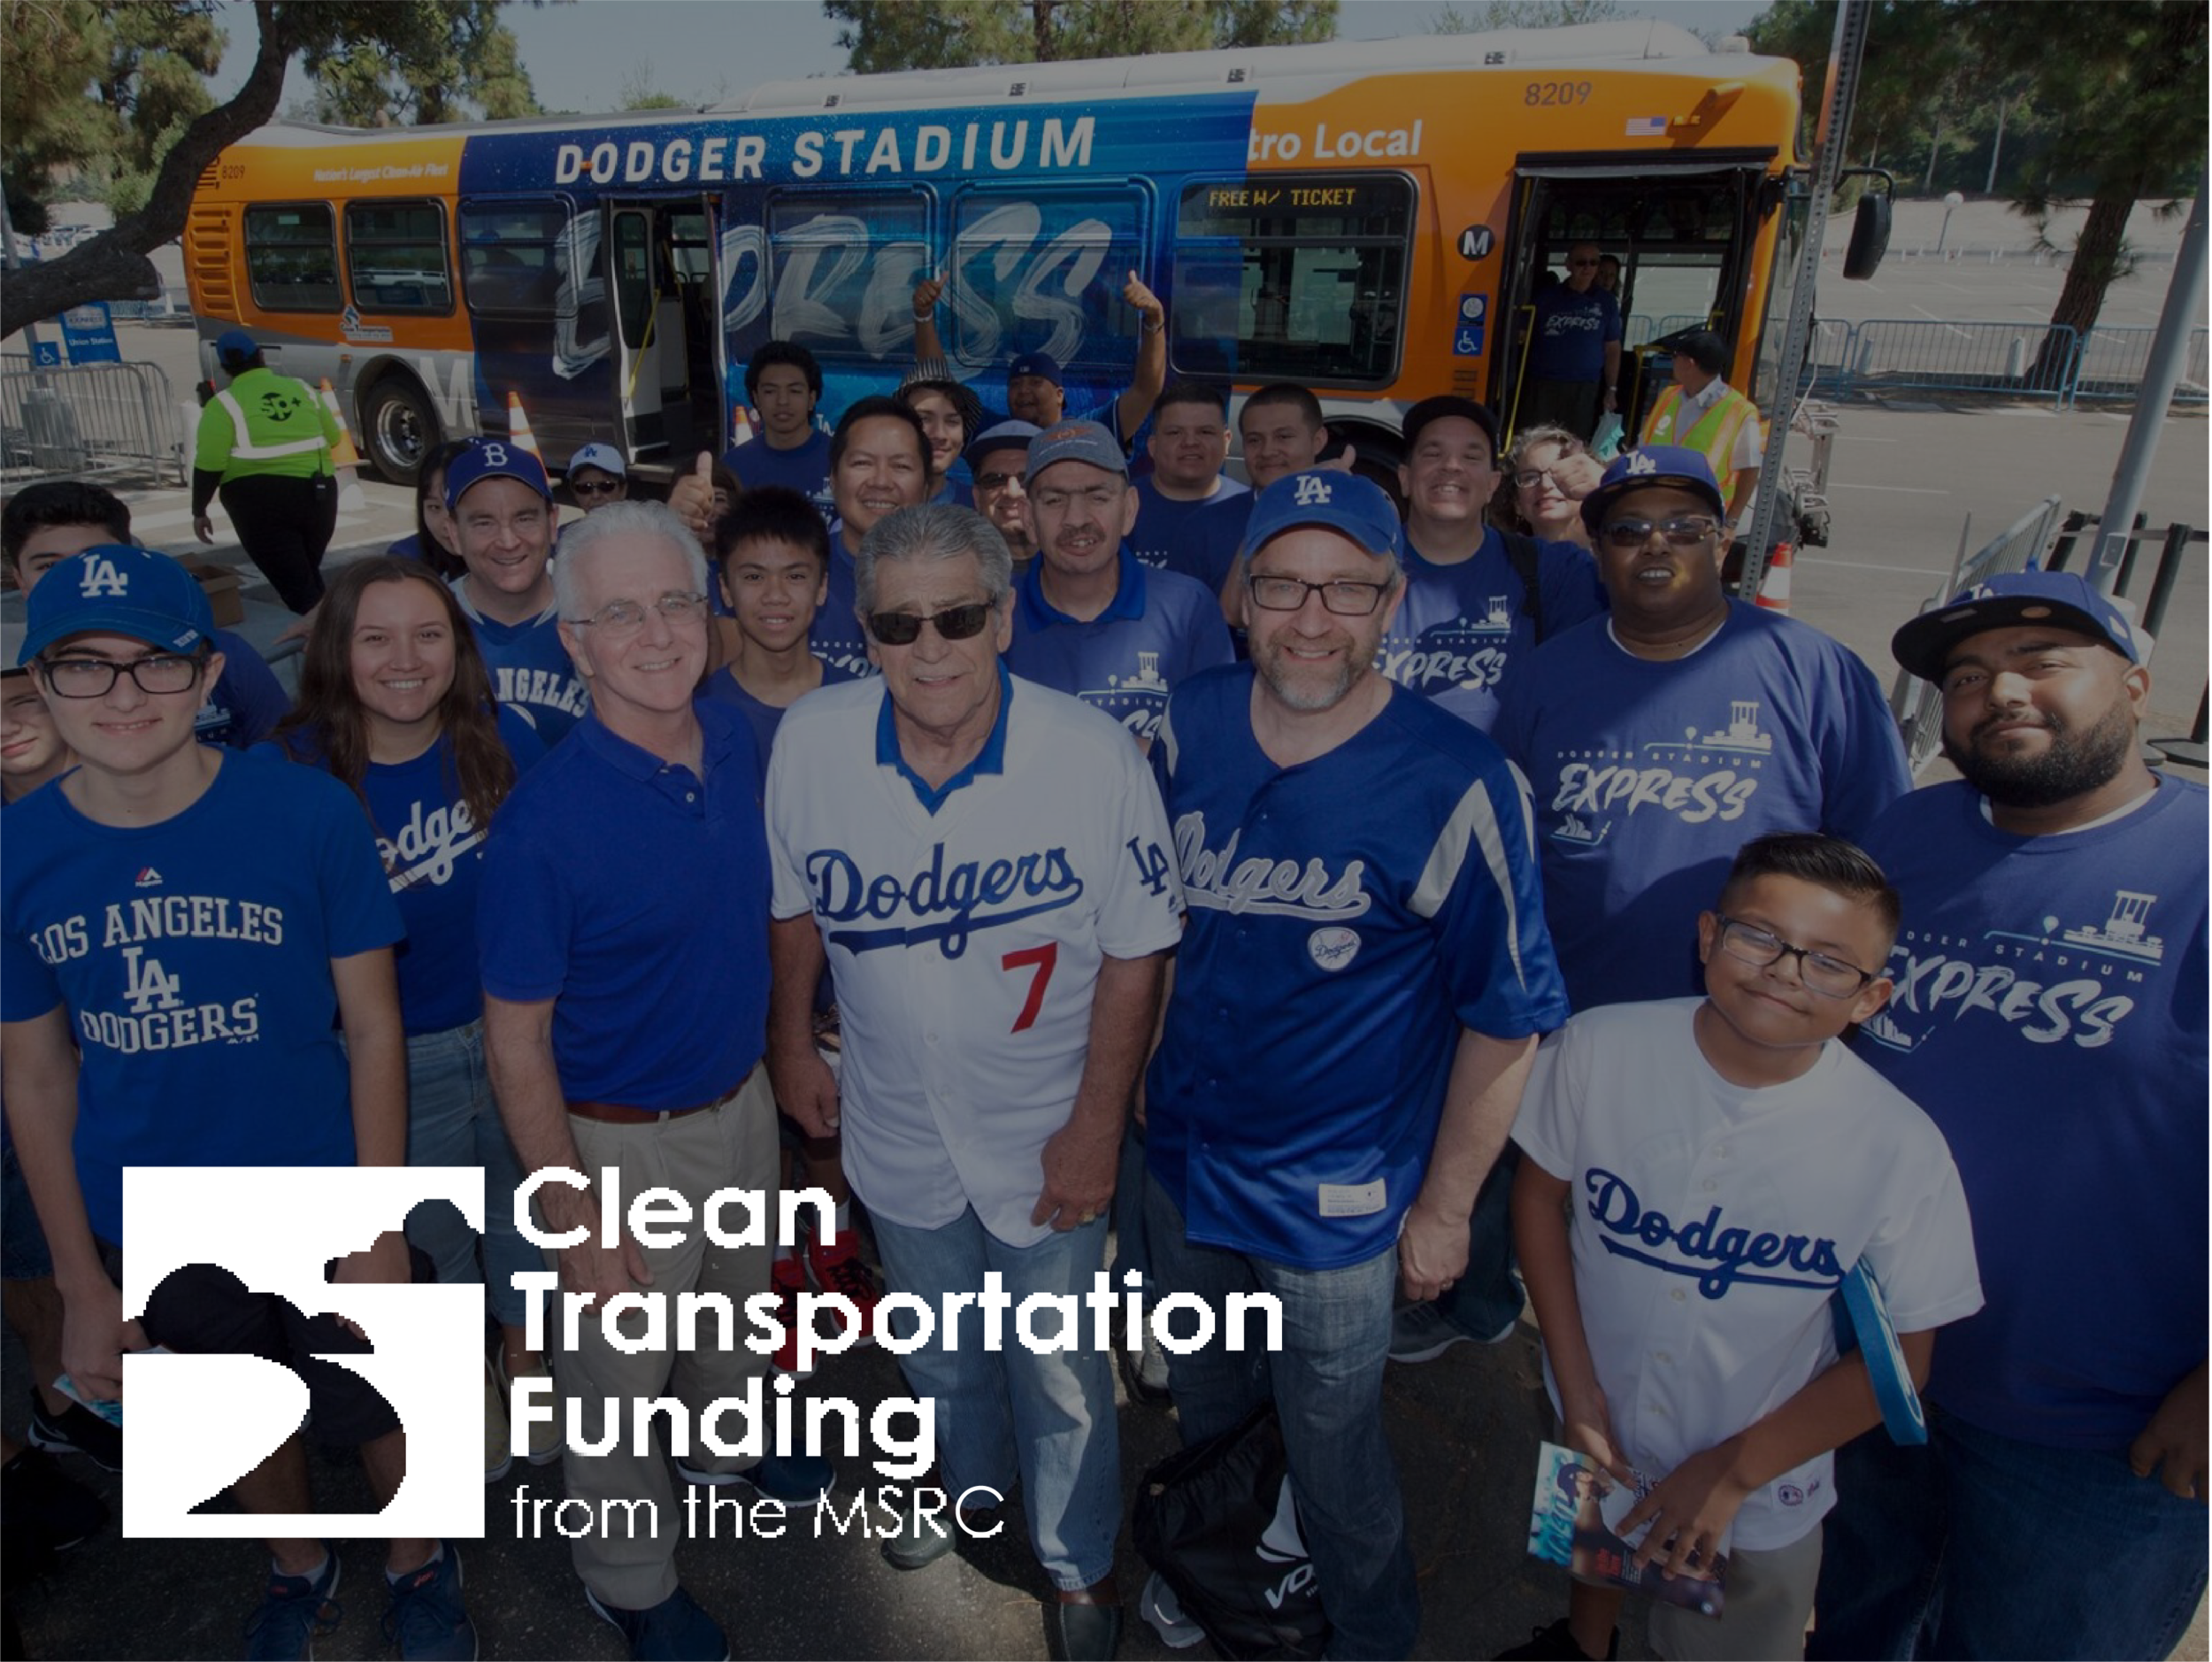 GOVERNMENT - Collaborated with the Los Angeles Dodgers and LA Metro to celebrate the two-millionth rider on the Dodger Stadium Express serviced by the MSRC's Clean Transportation Funding initiative